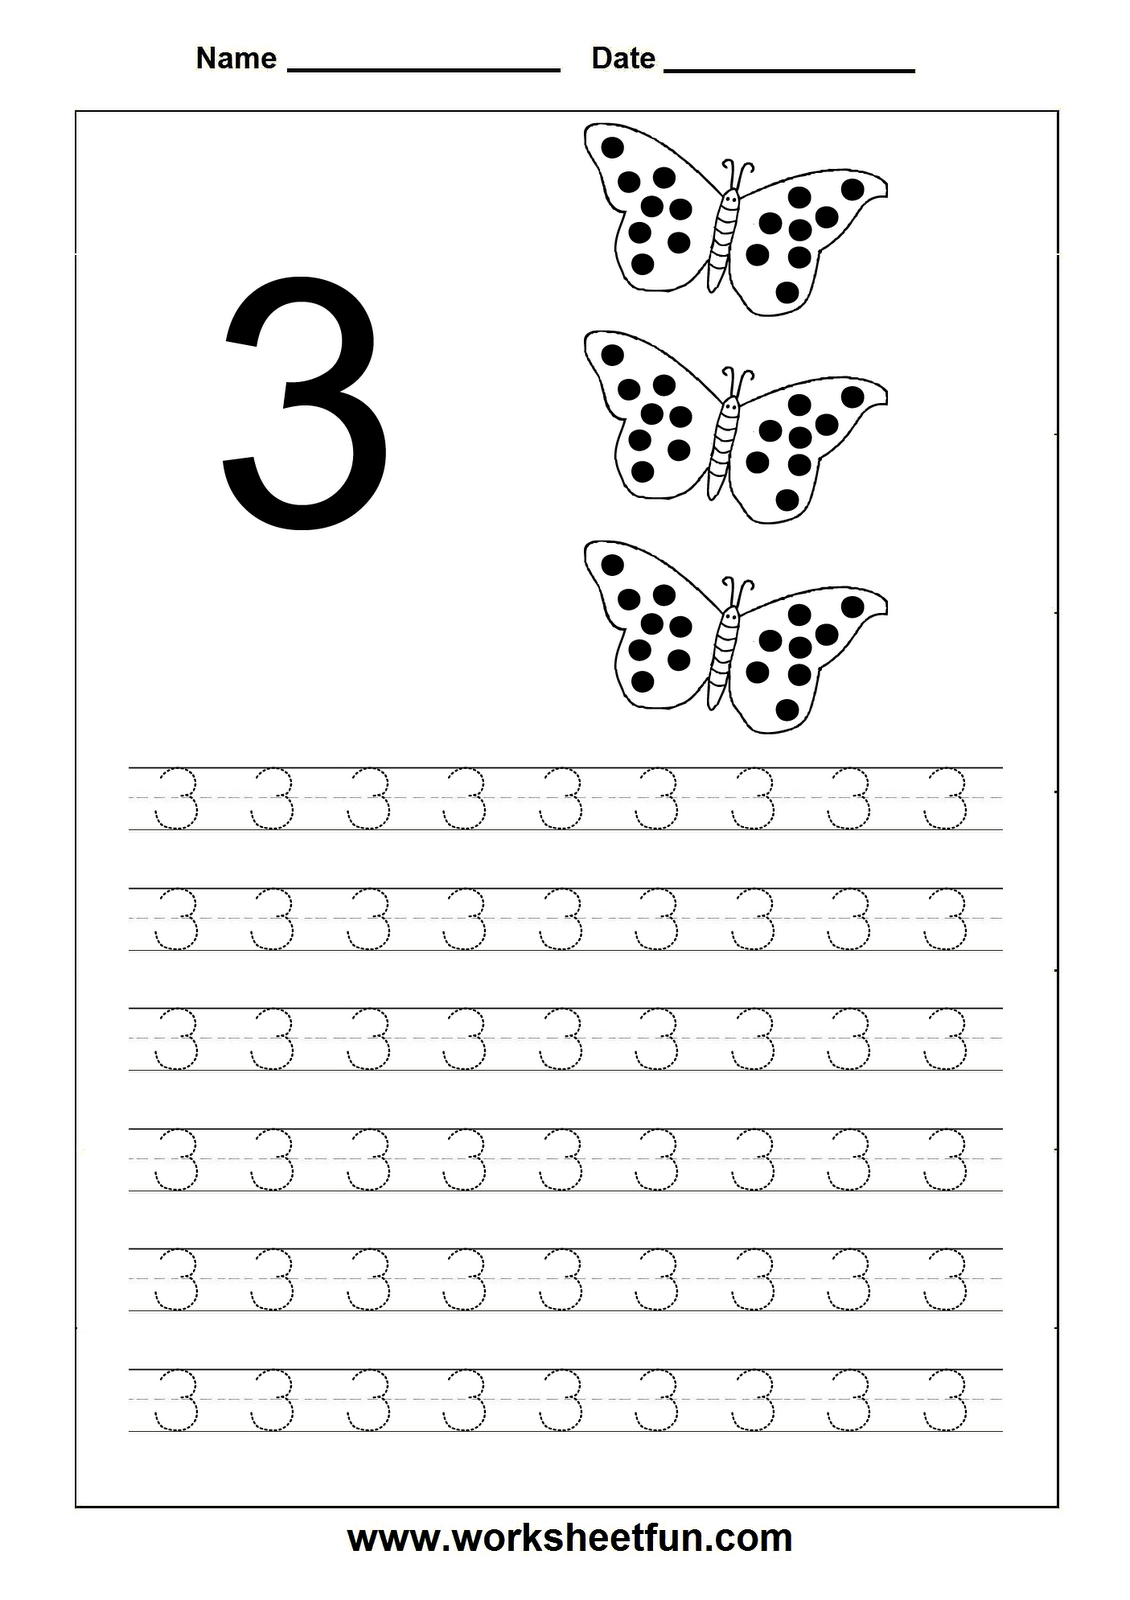 Number Tracing 3 With Images